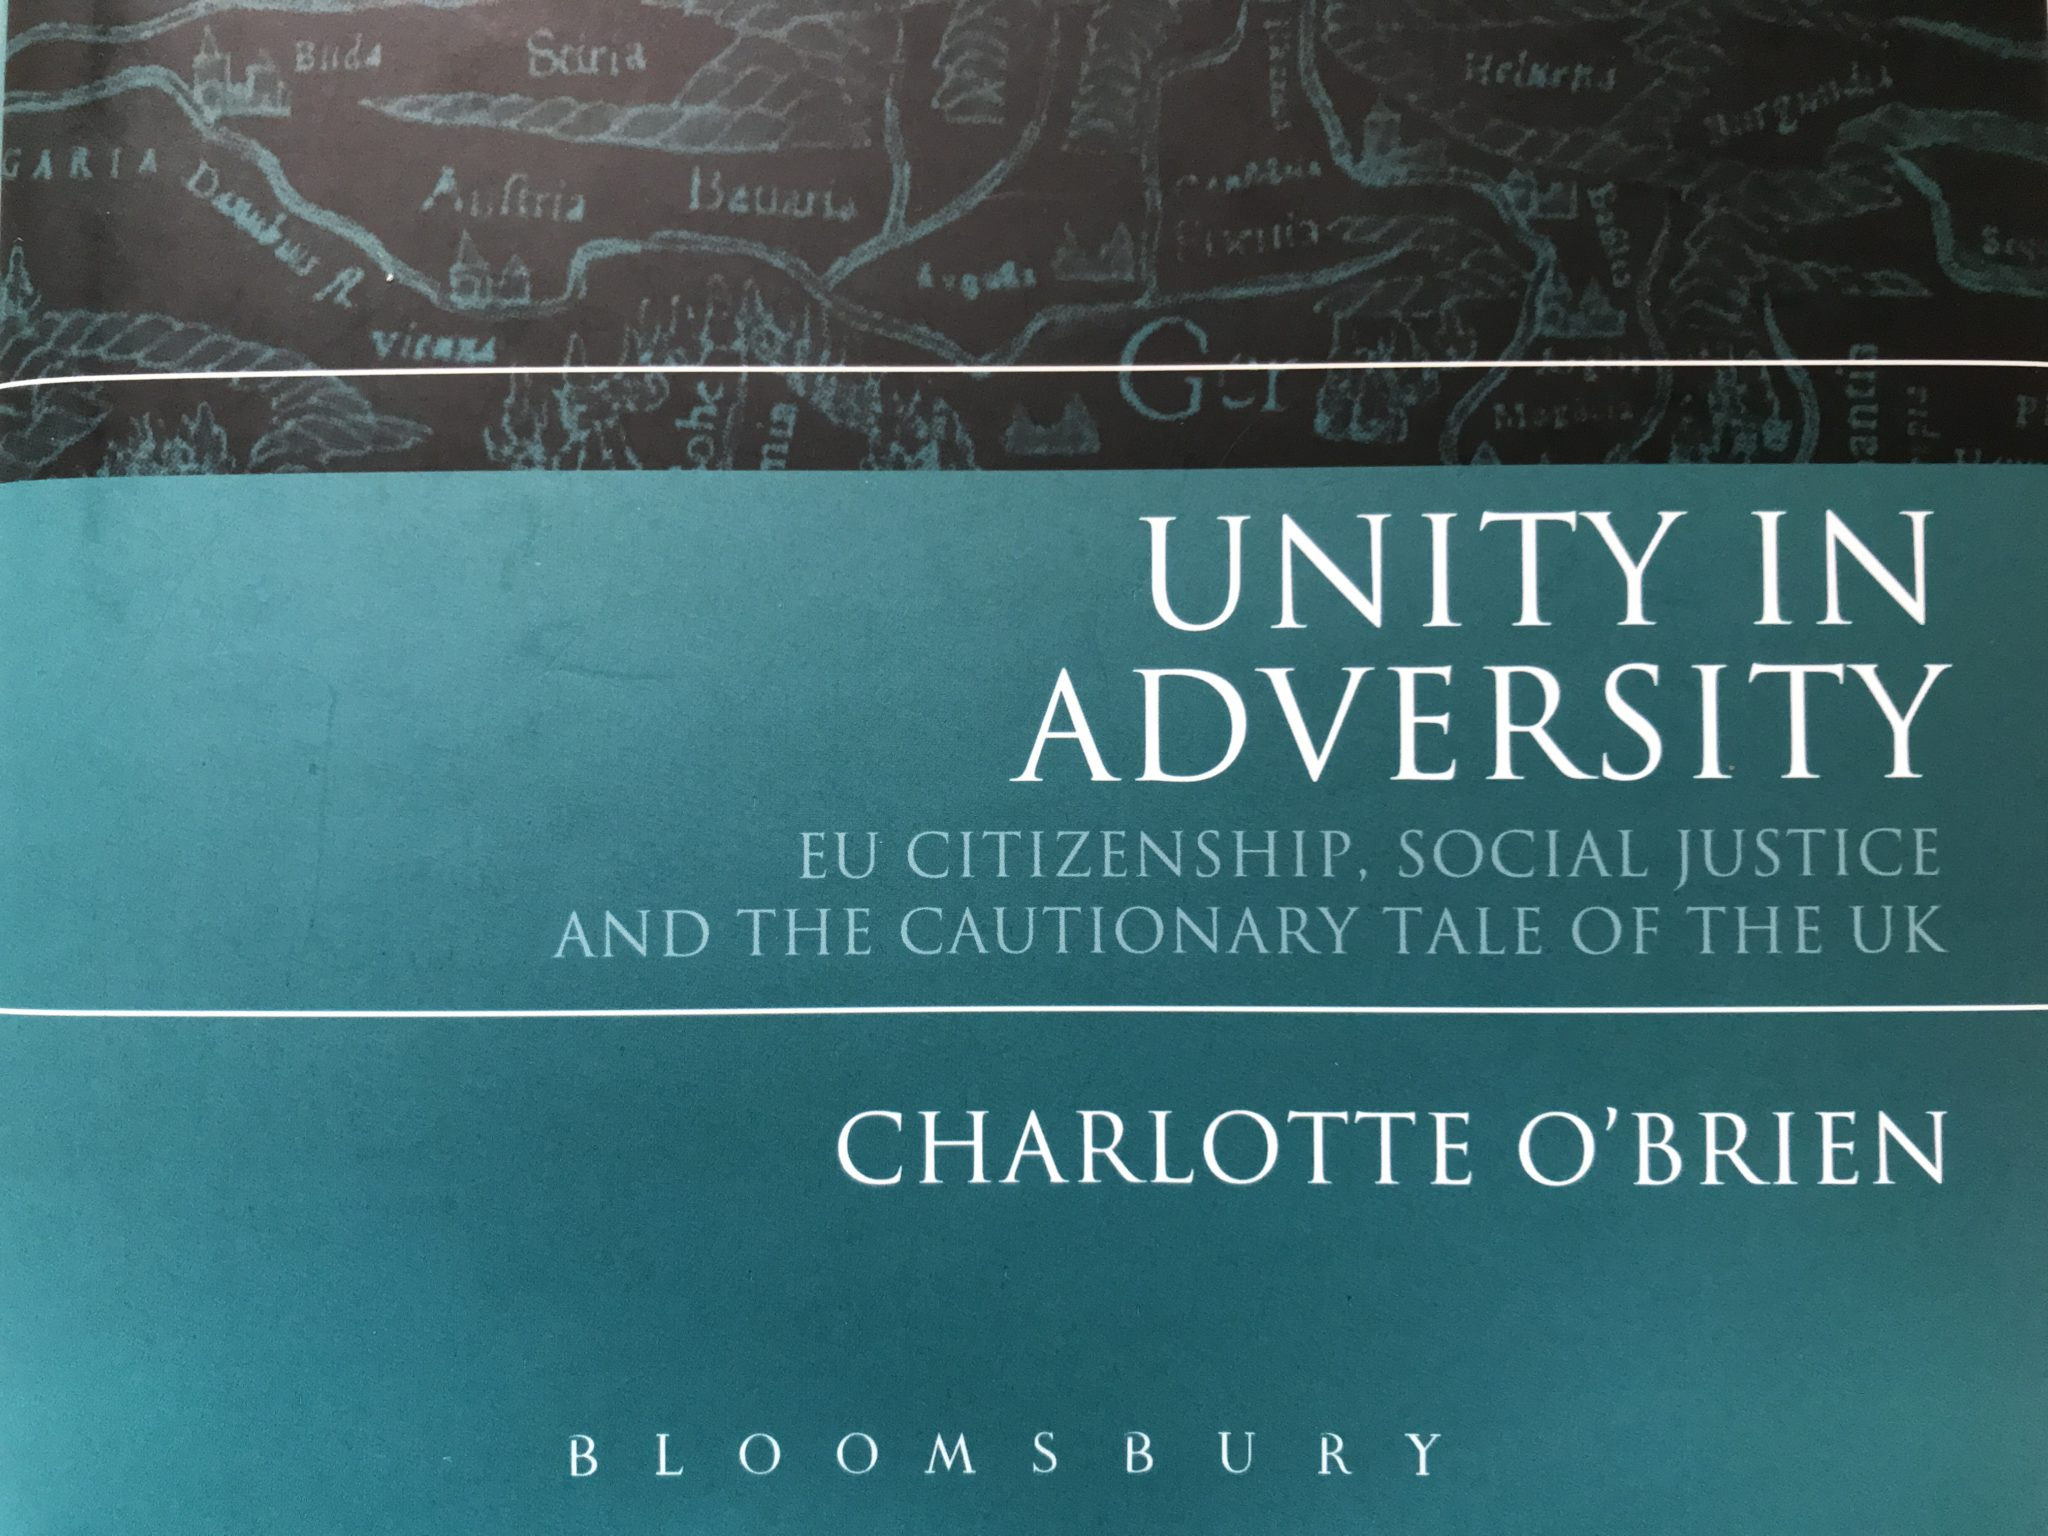 Book review: Unity in Adversity: EU citizenship, social justice and the cautionary tale of the UK by Charlotte O'Brien